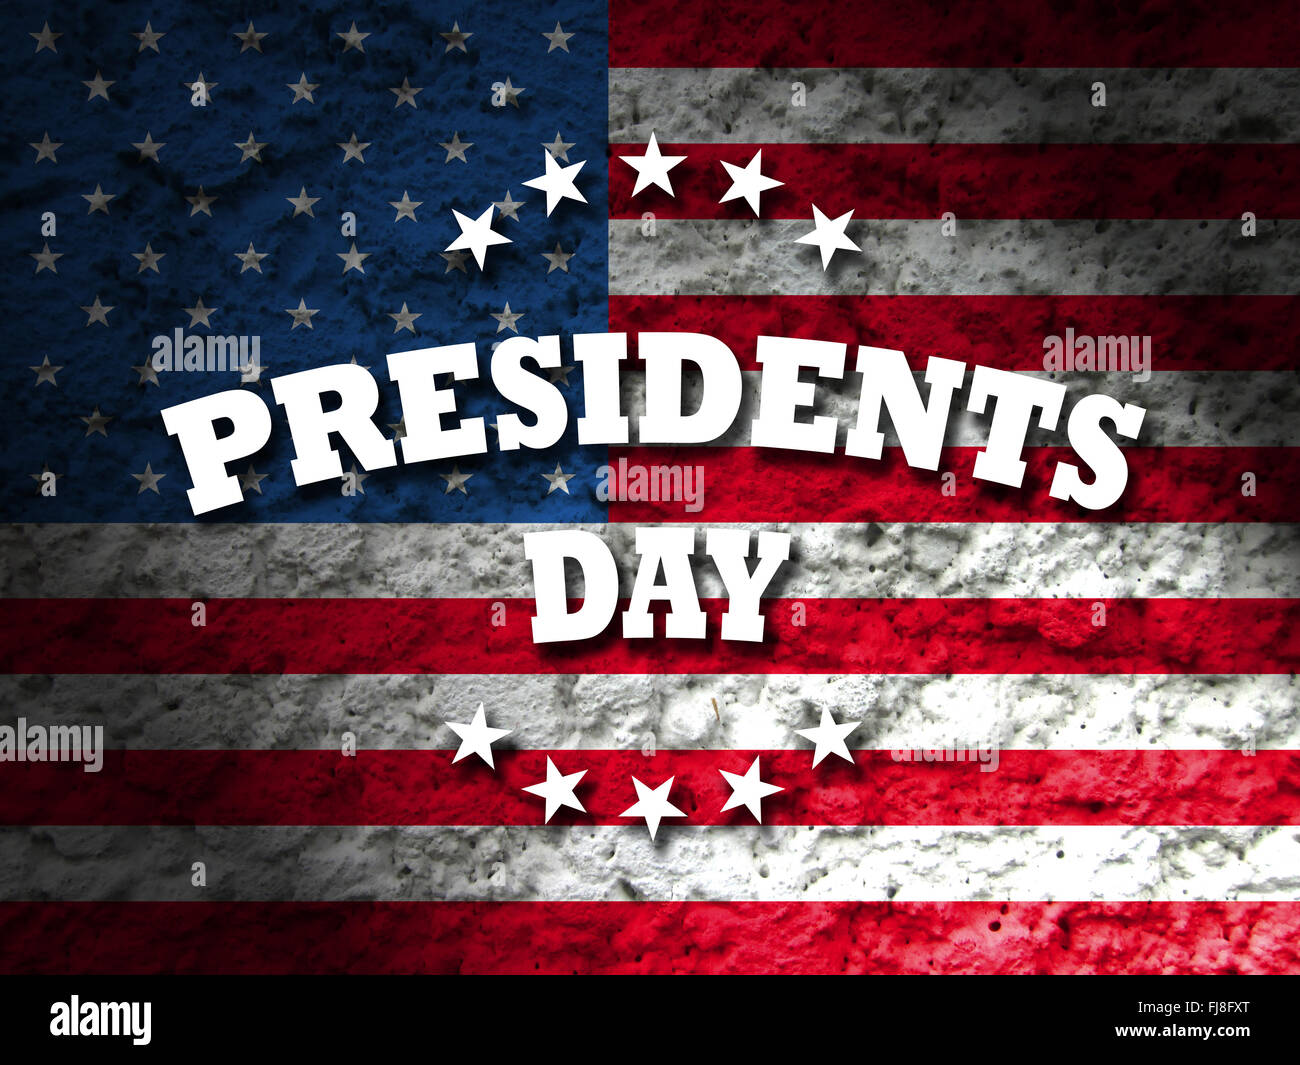 Presidents Day USA card with american flag grunge background - Stock Image